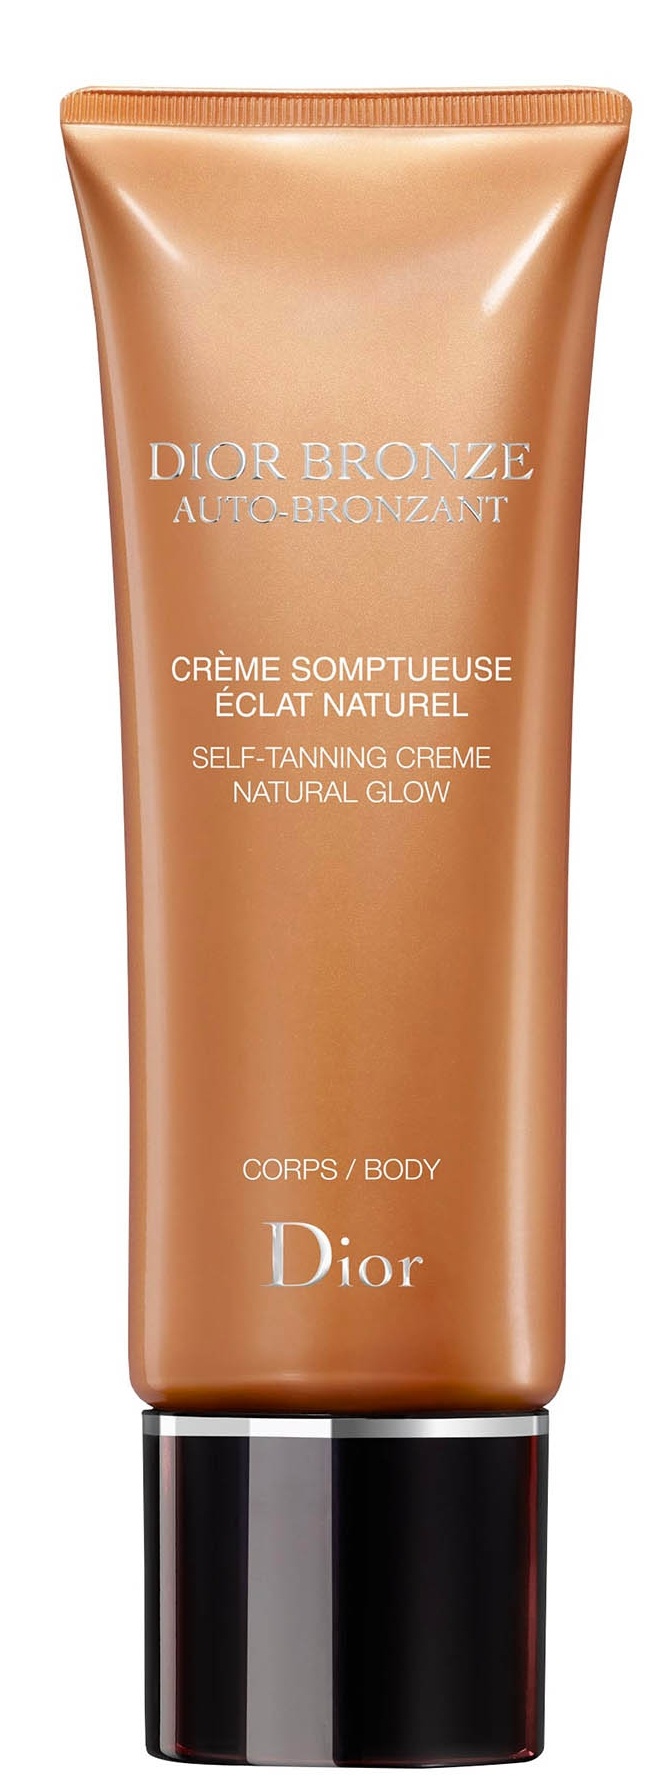 Self-Tanning Cream Natural Glow by Dior